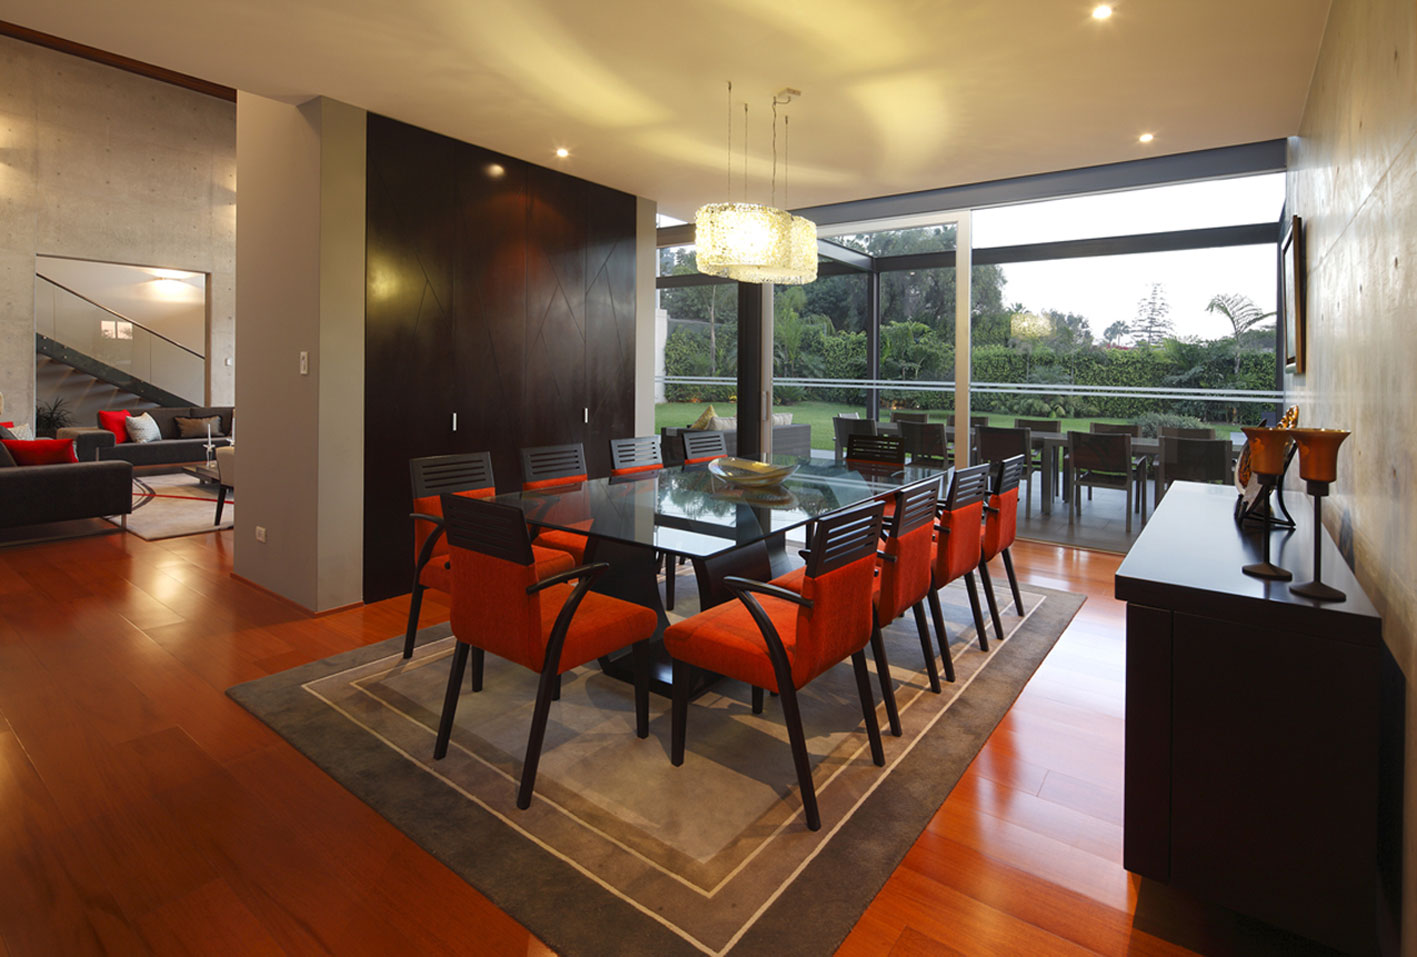 Glass Dining Table, Rug, Lighting, Imposing Family Home in Lima, Peru